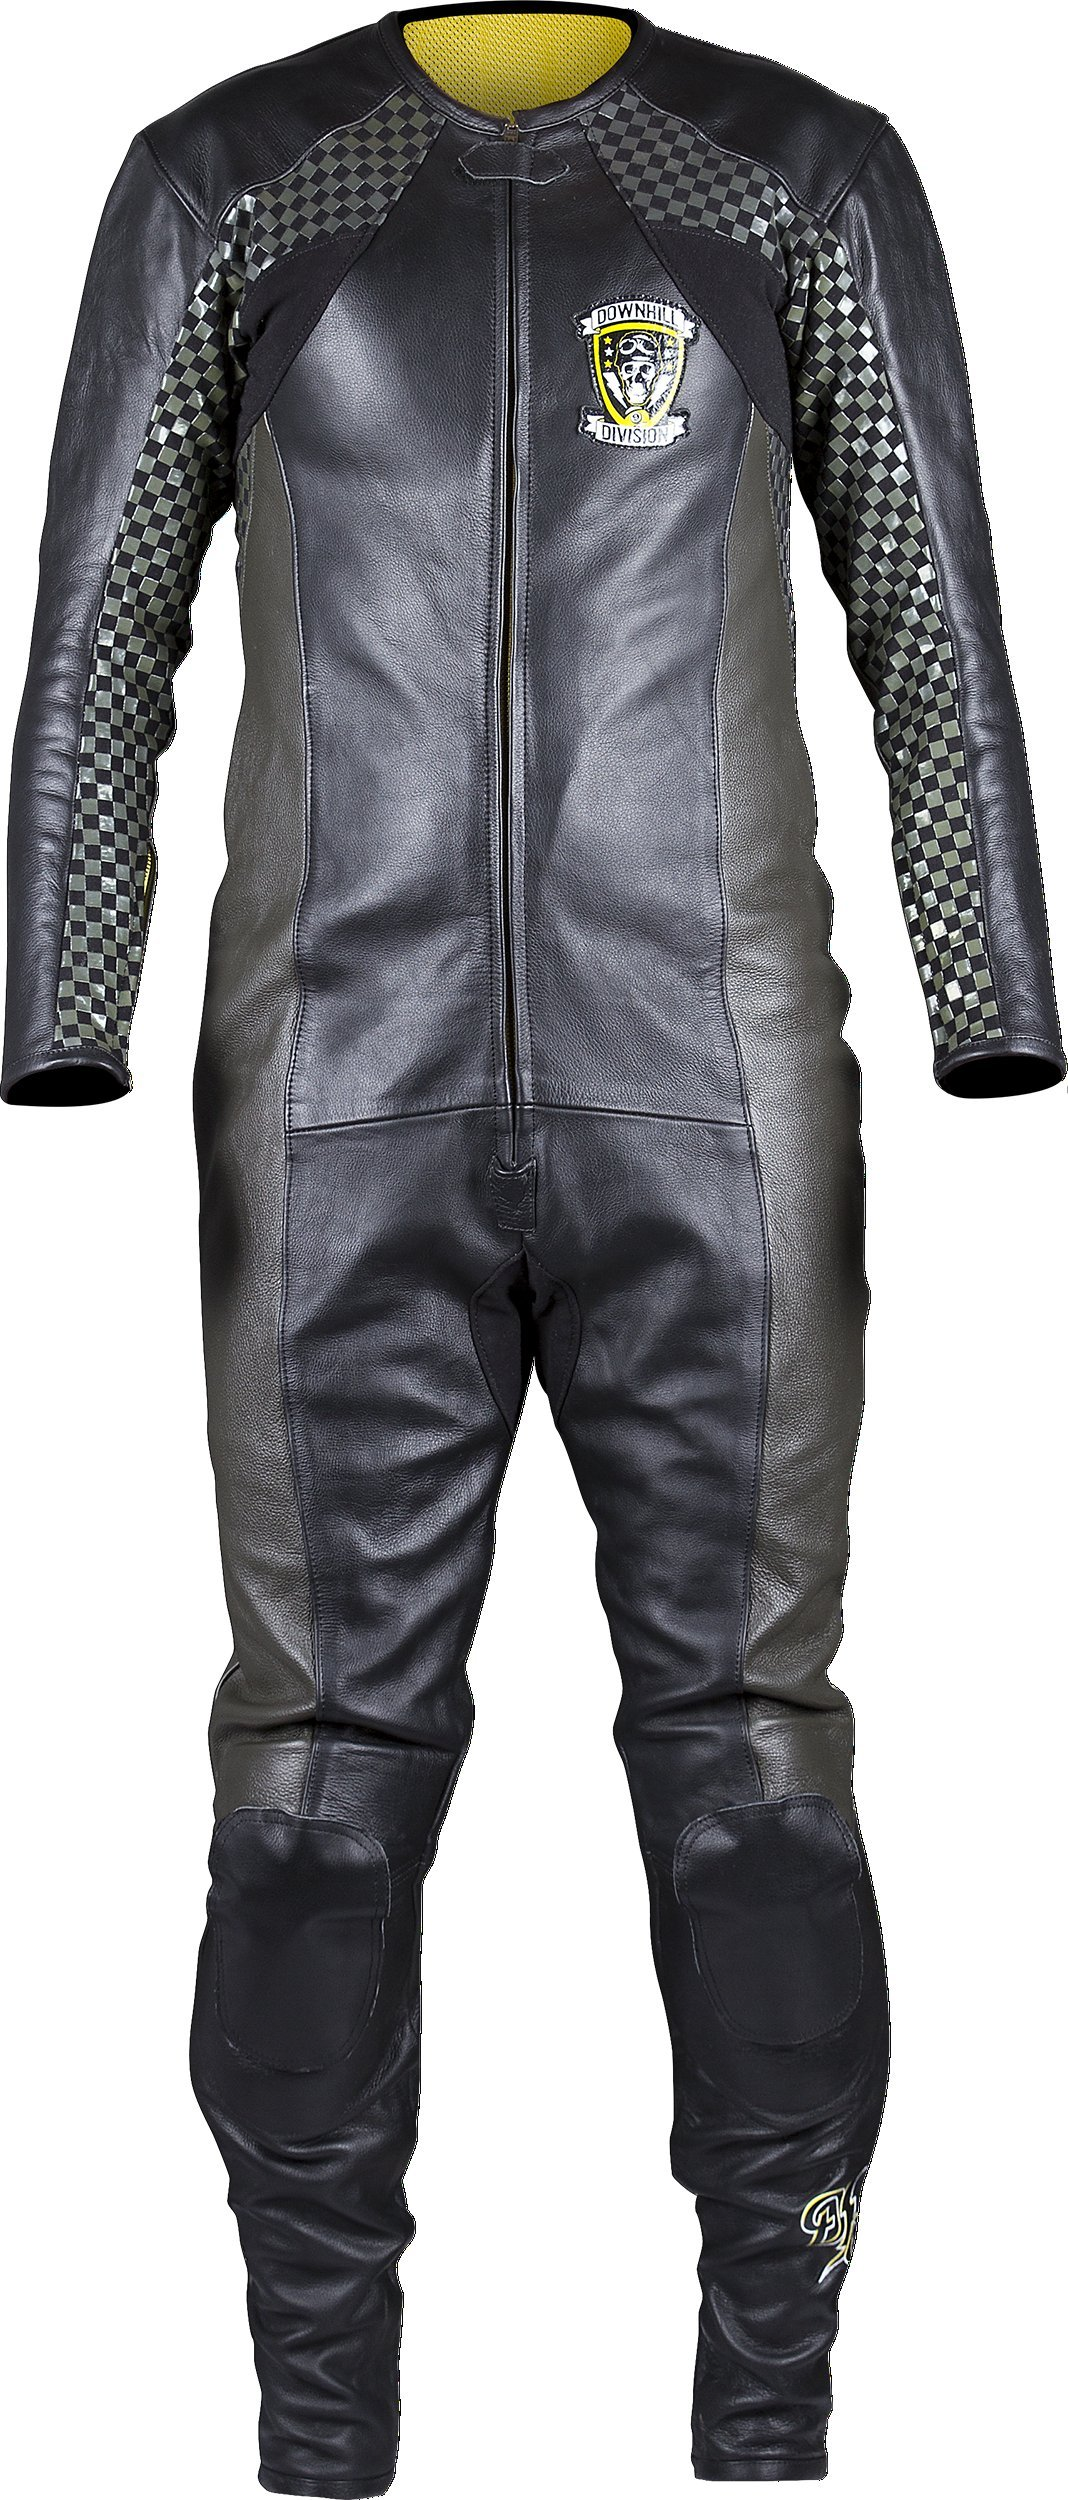 Sector 9 Bomber Suit DHD Race Suit, Black, Small